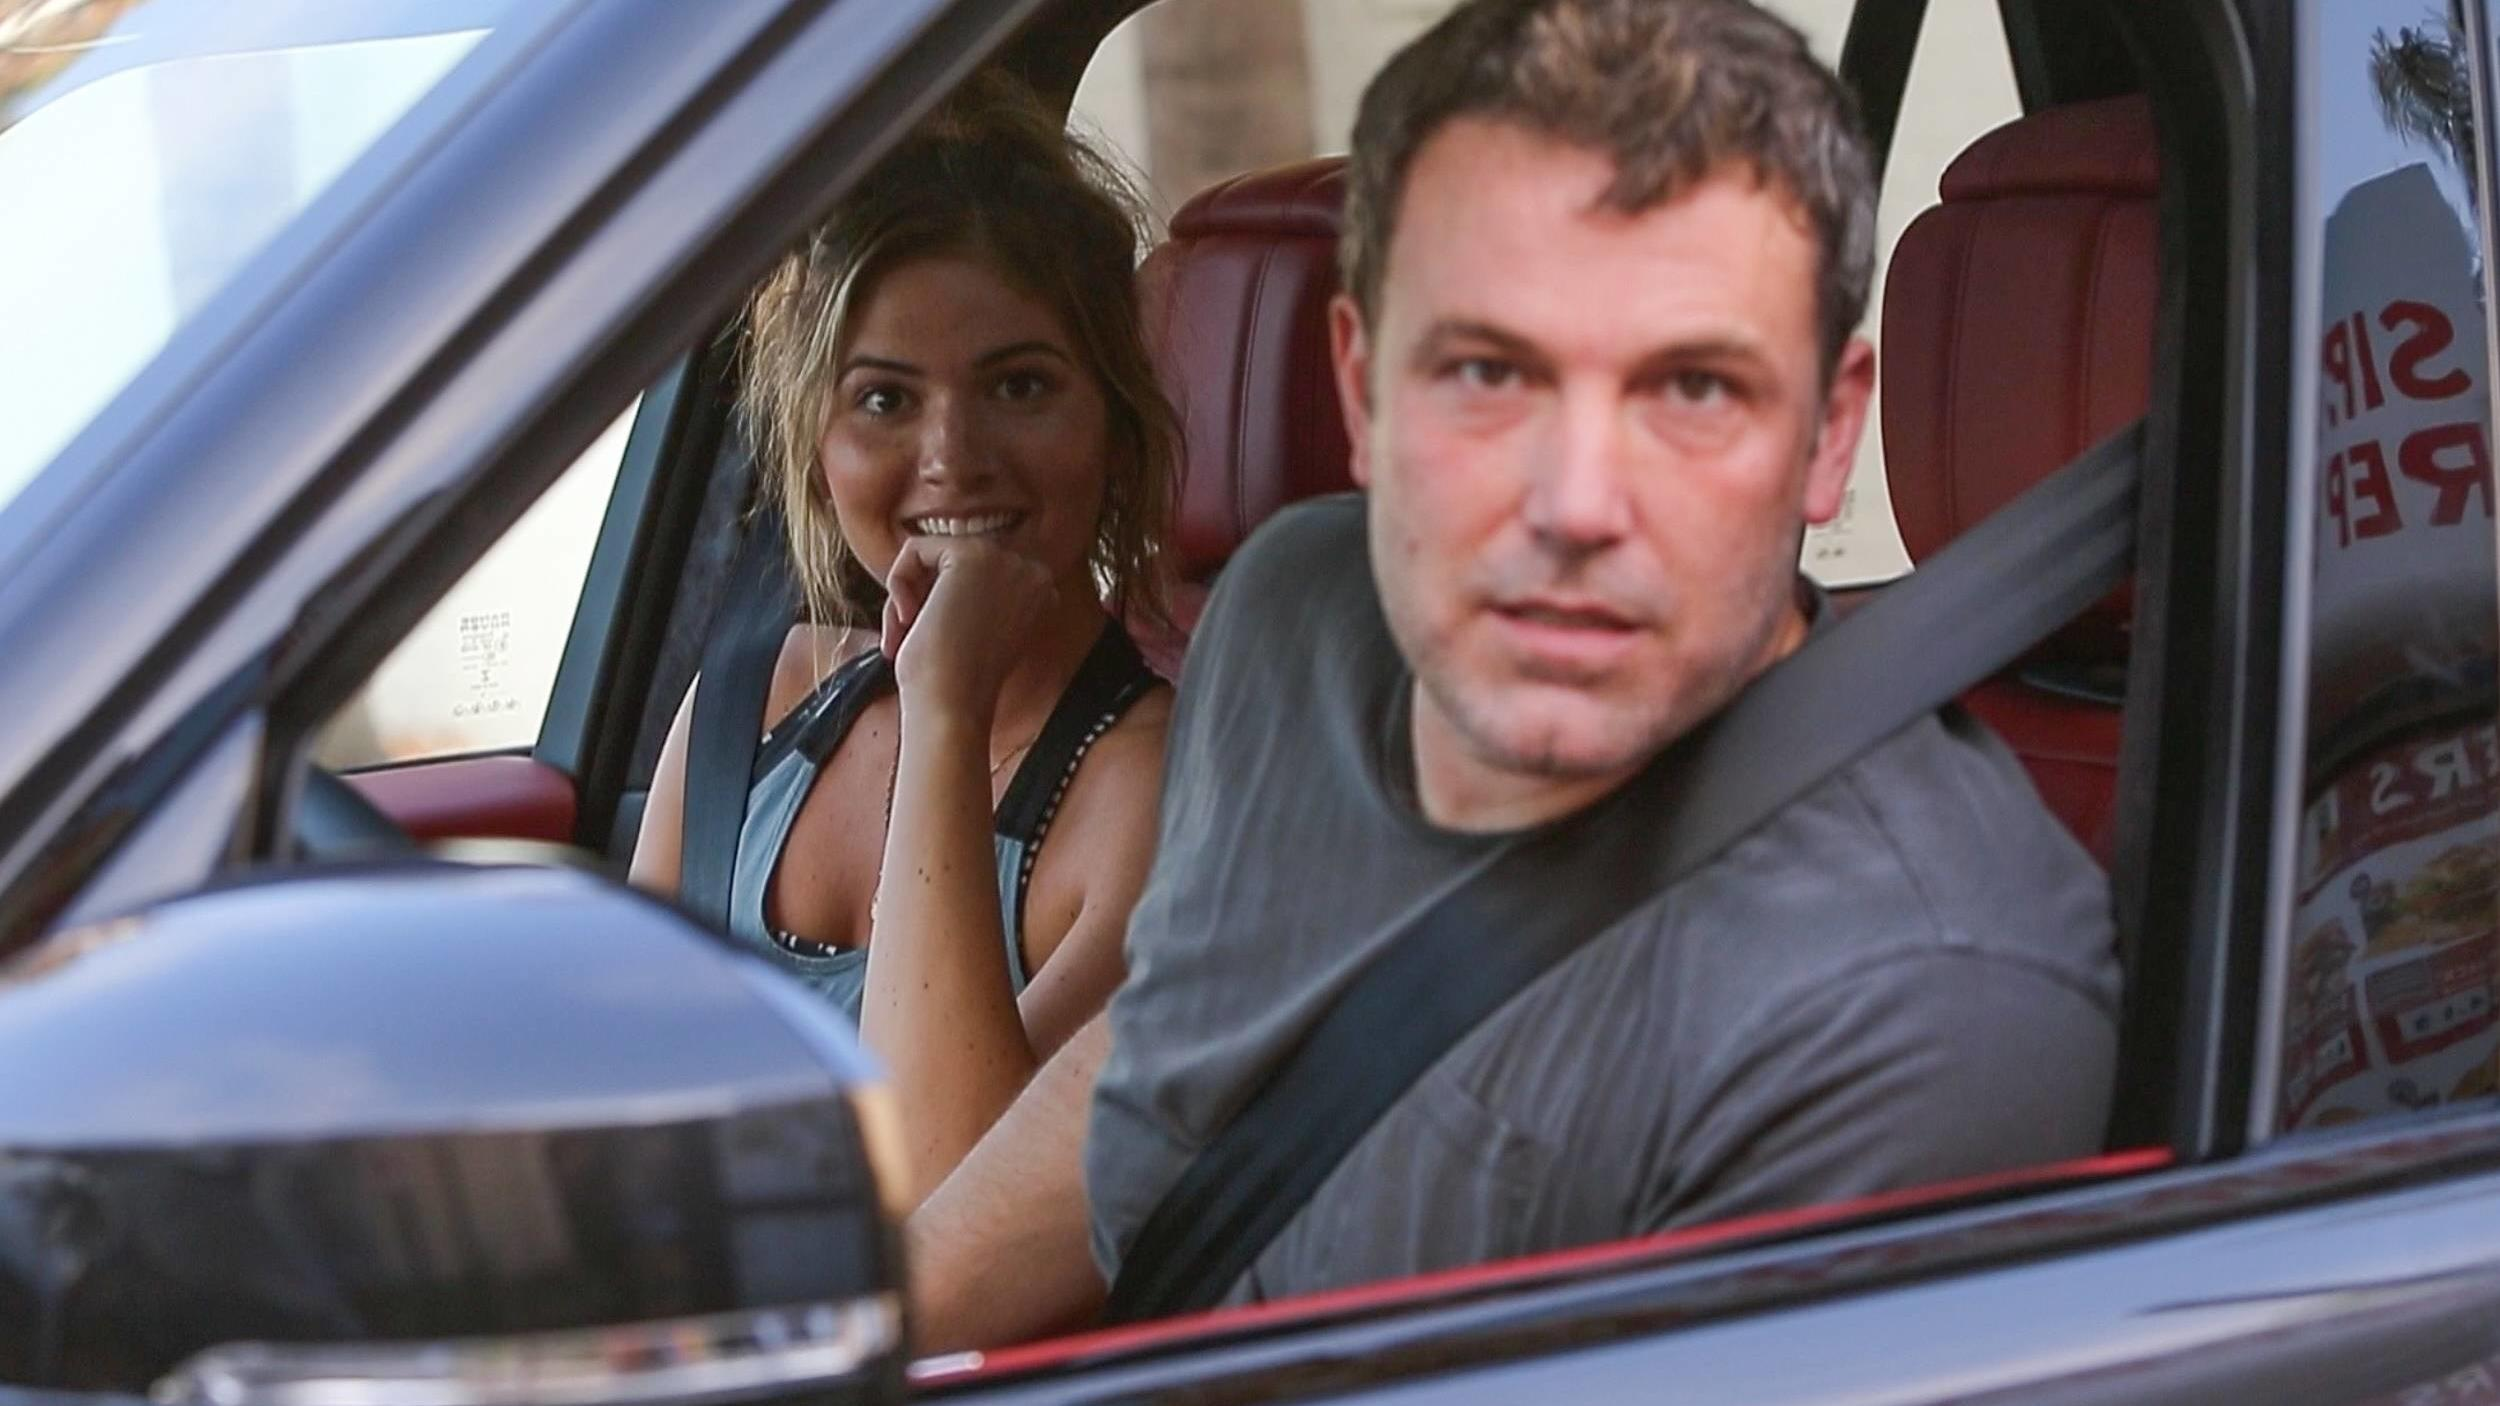 Ben Affleck and rumored new girlfriend Shauna Sexton grab some fast food as the pair are seen together for the first time. The alleged couple are all smiles as they order at the drive through at Jack in the Box. The model looks fresh faced and casual